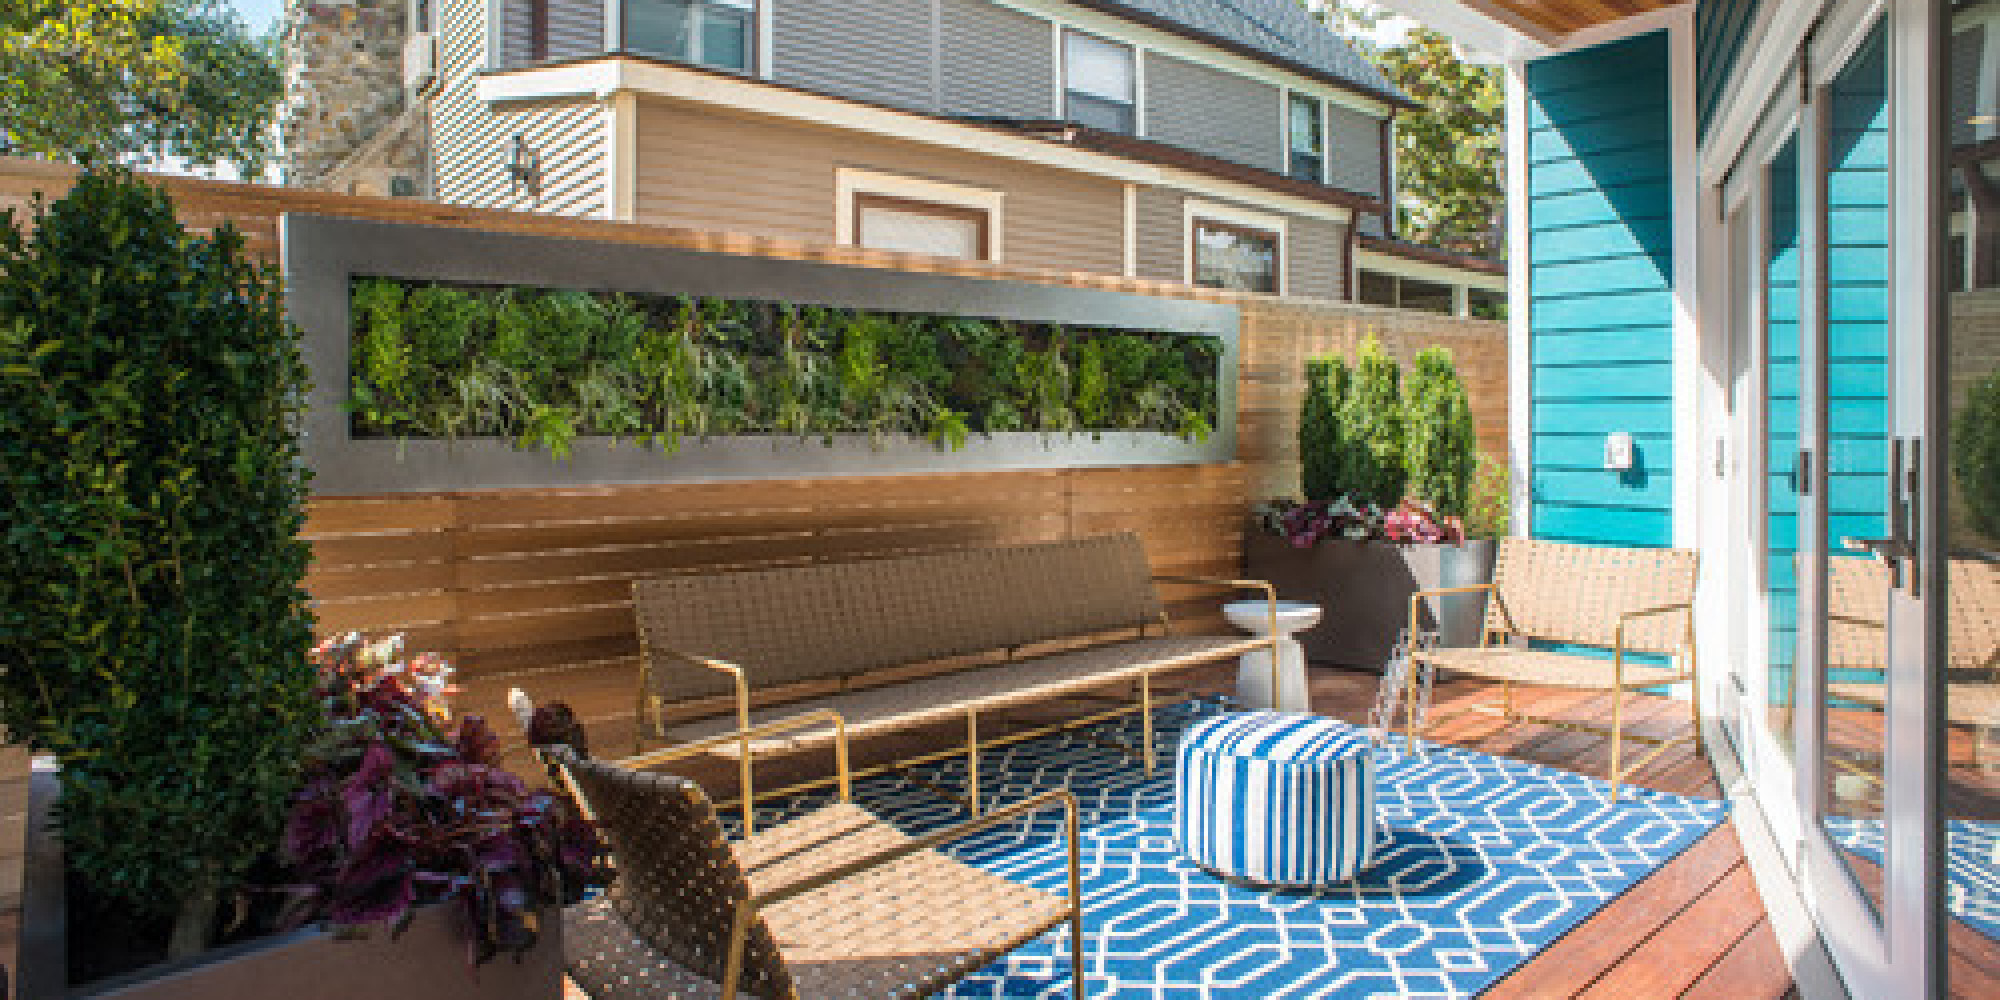 16 Ways to Get More from Your Small Backyard | HuffPost on Small Backyard Renovations id=68962